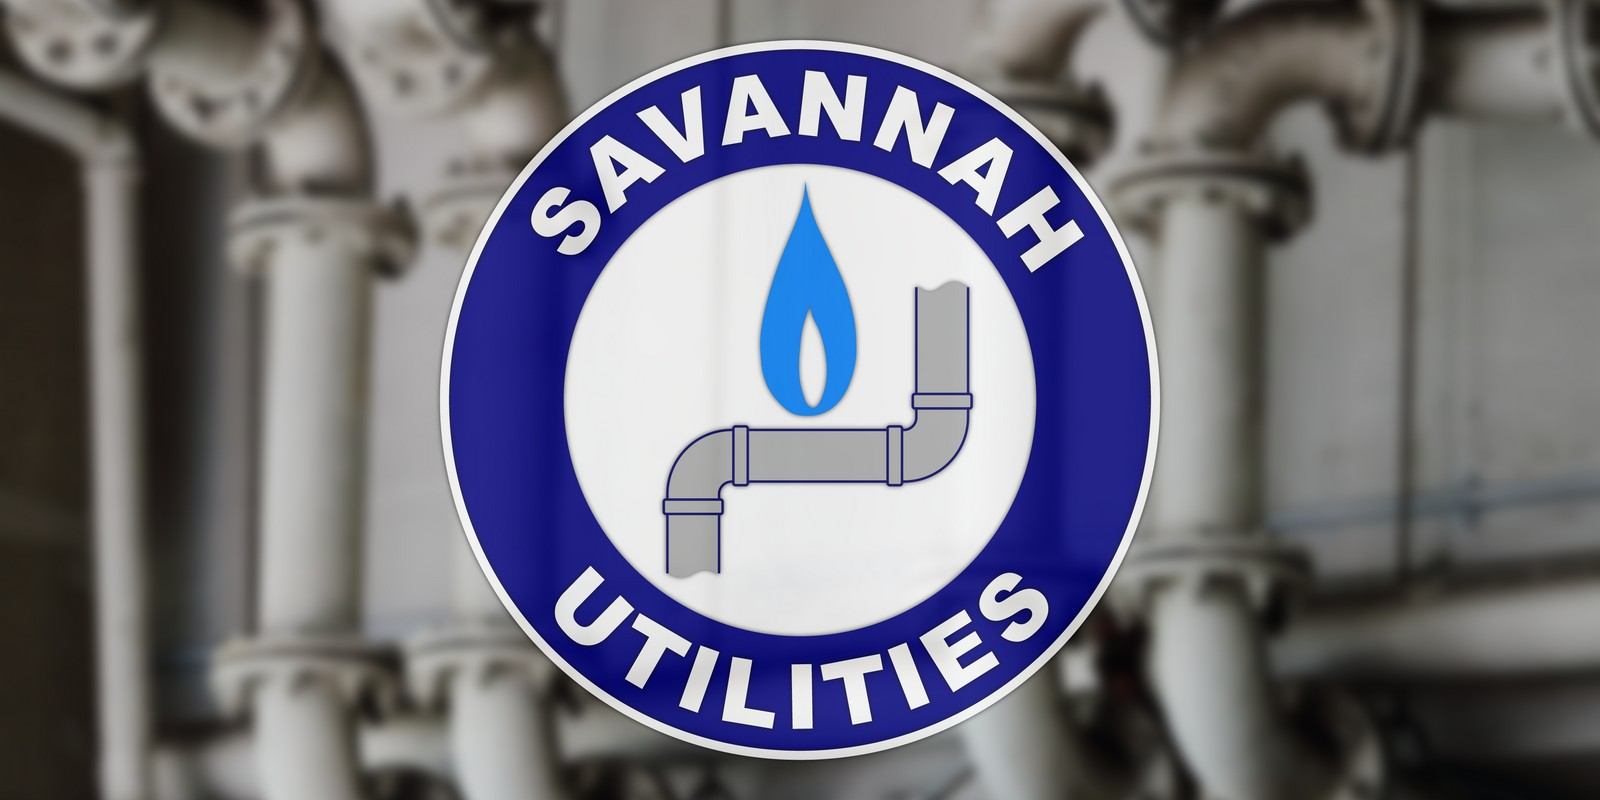 Savannah Utilities Conducting Telephone Survey